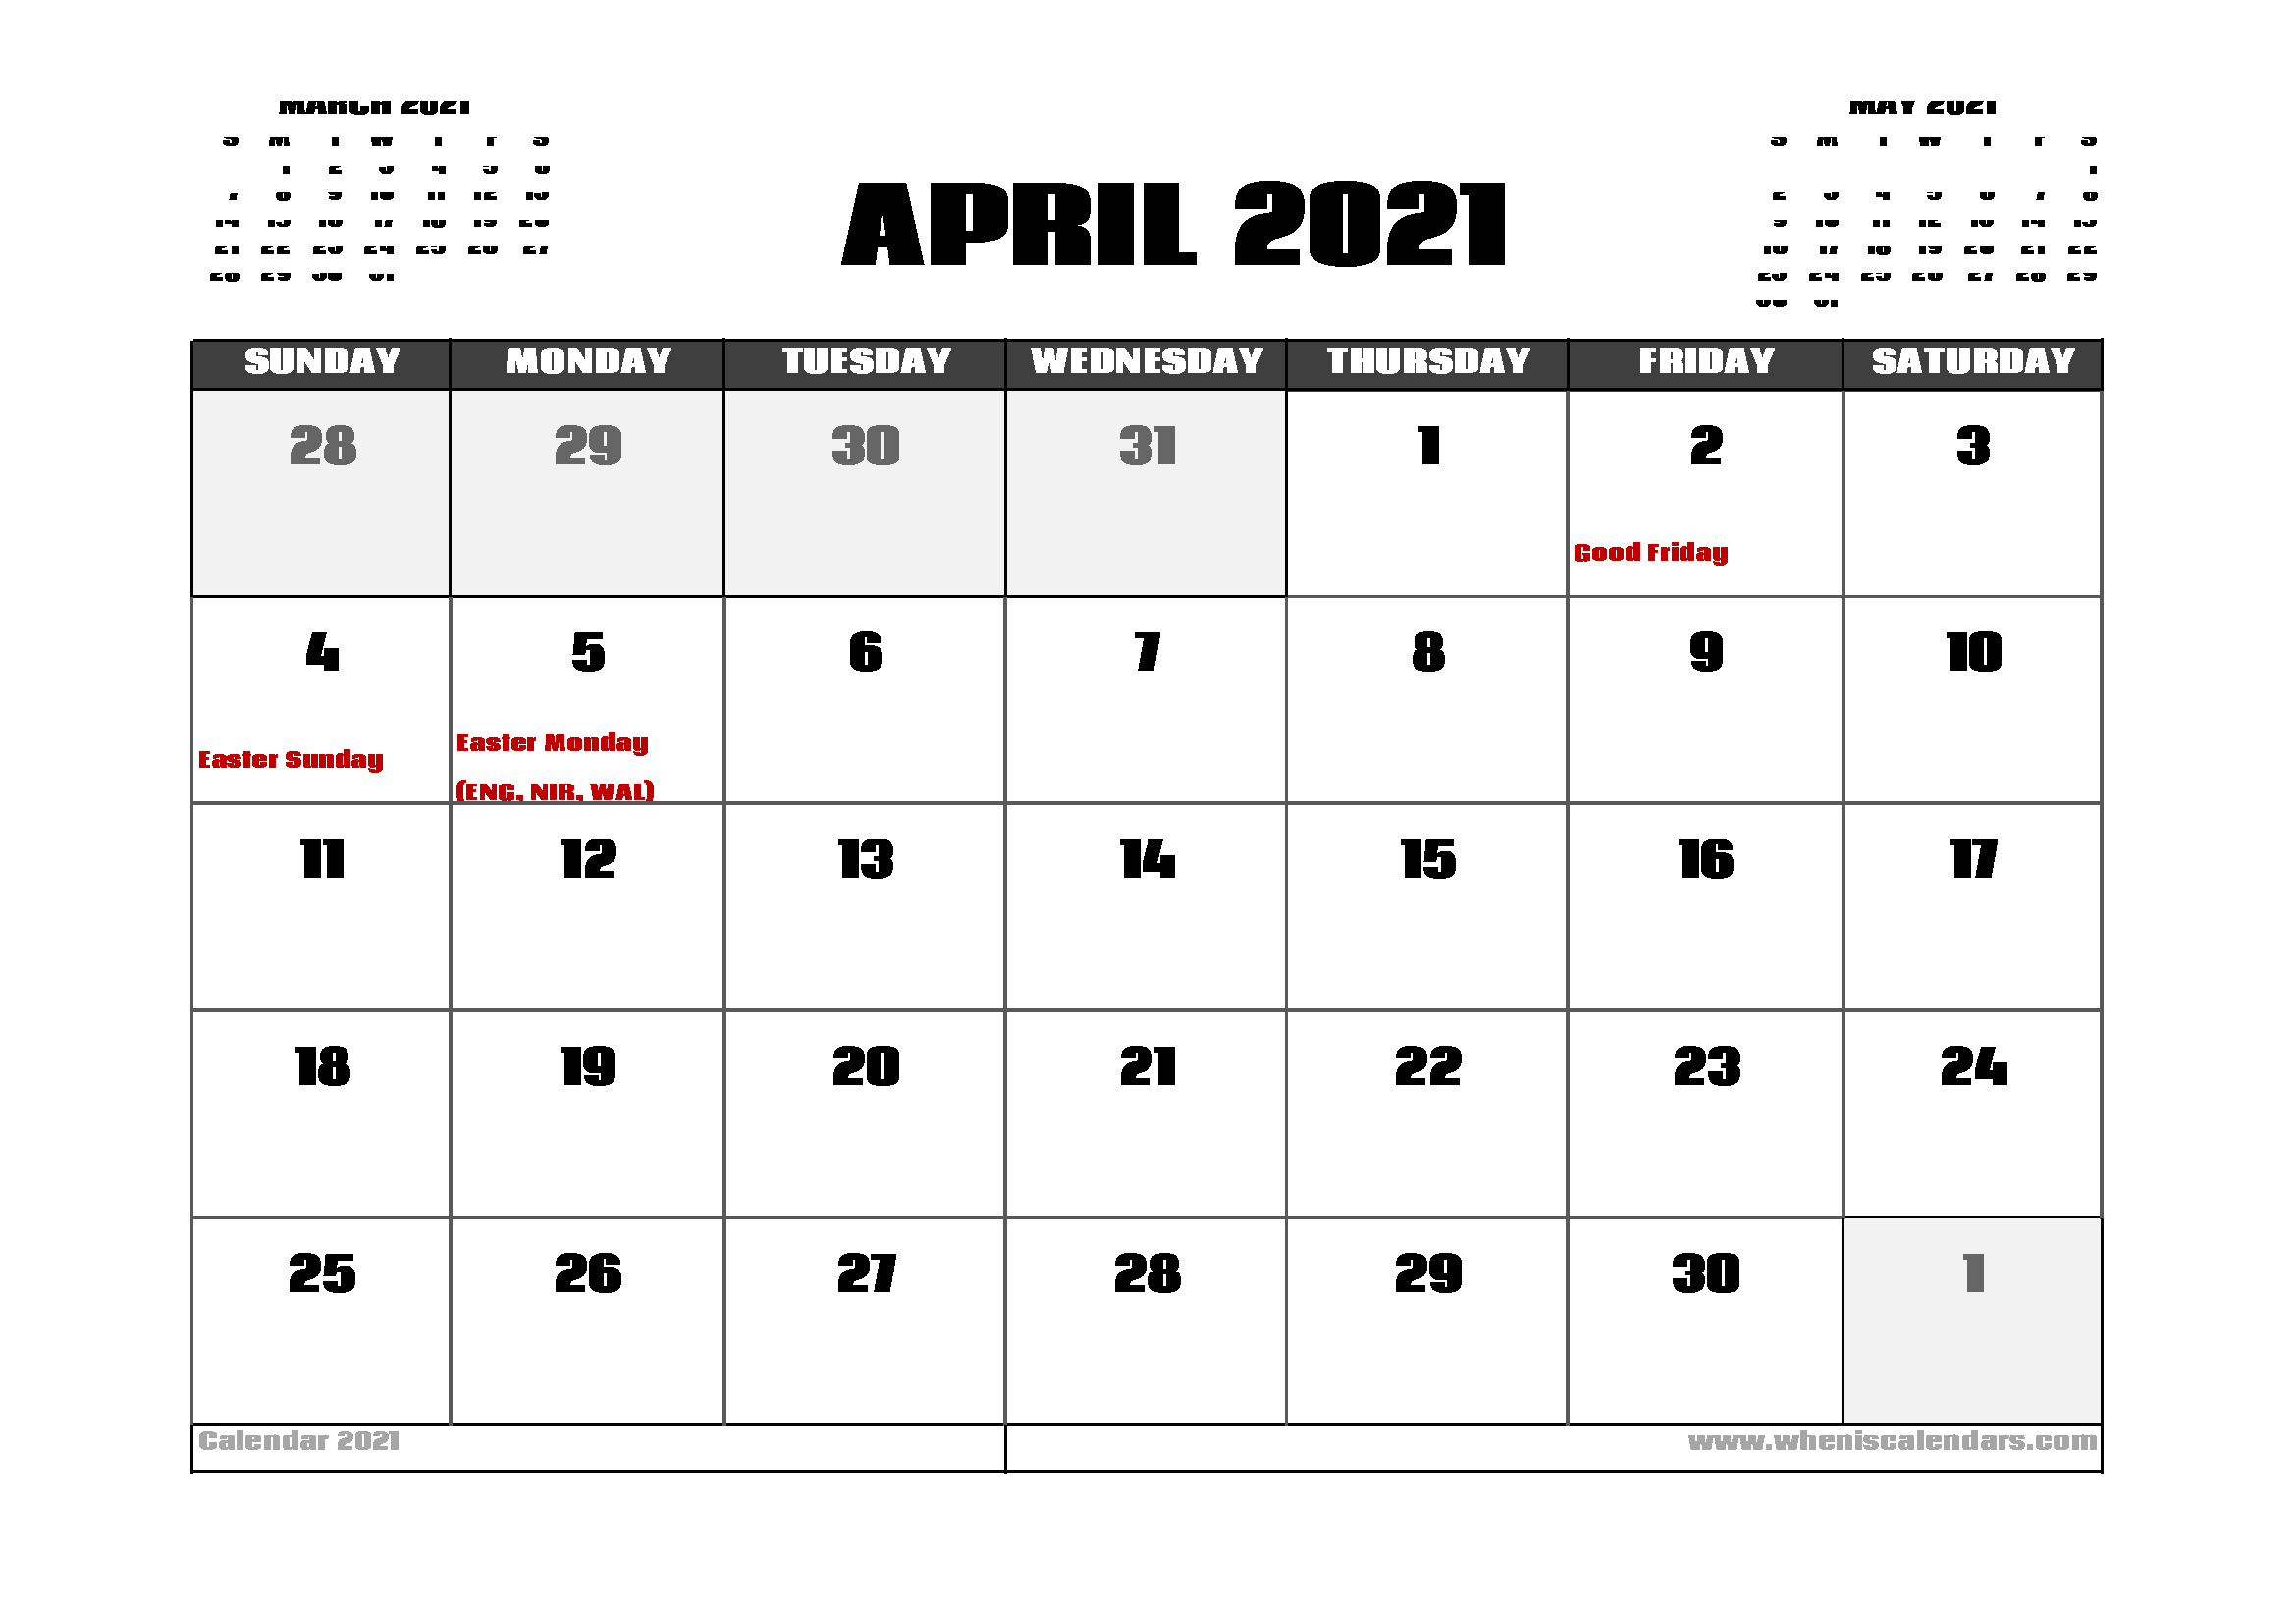 April 2021 Calendar Uk With Holidays In 2020 Calendar Uk 2021 Calendar Calendar